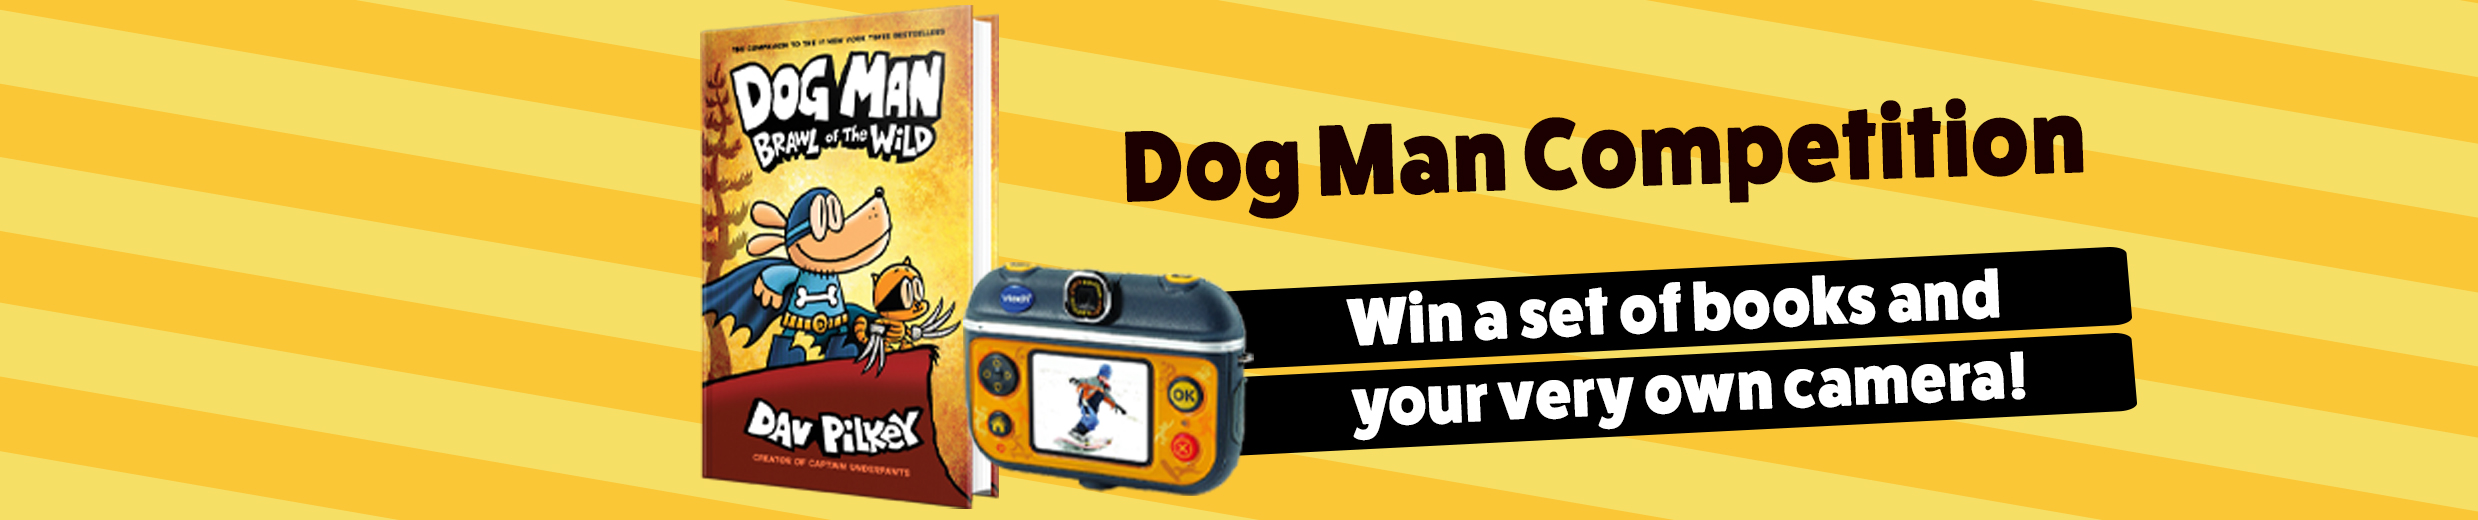 Dog Man competition spring 2019 banner desk